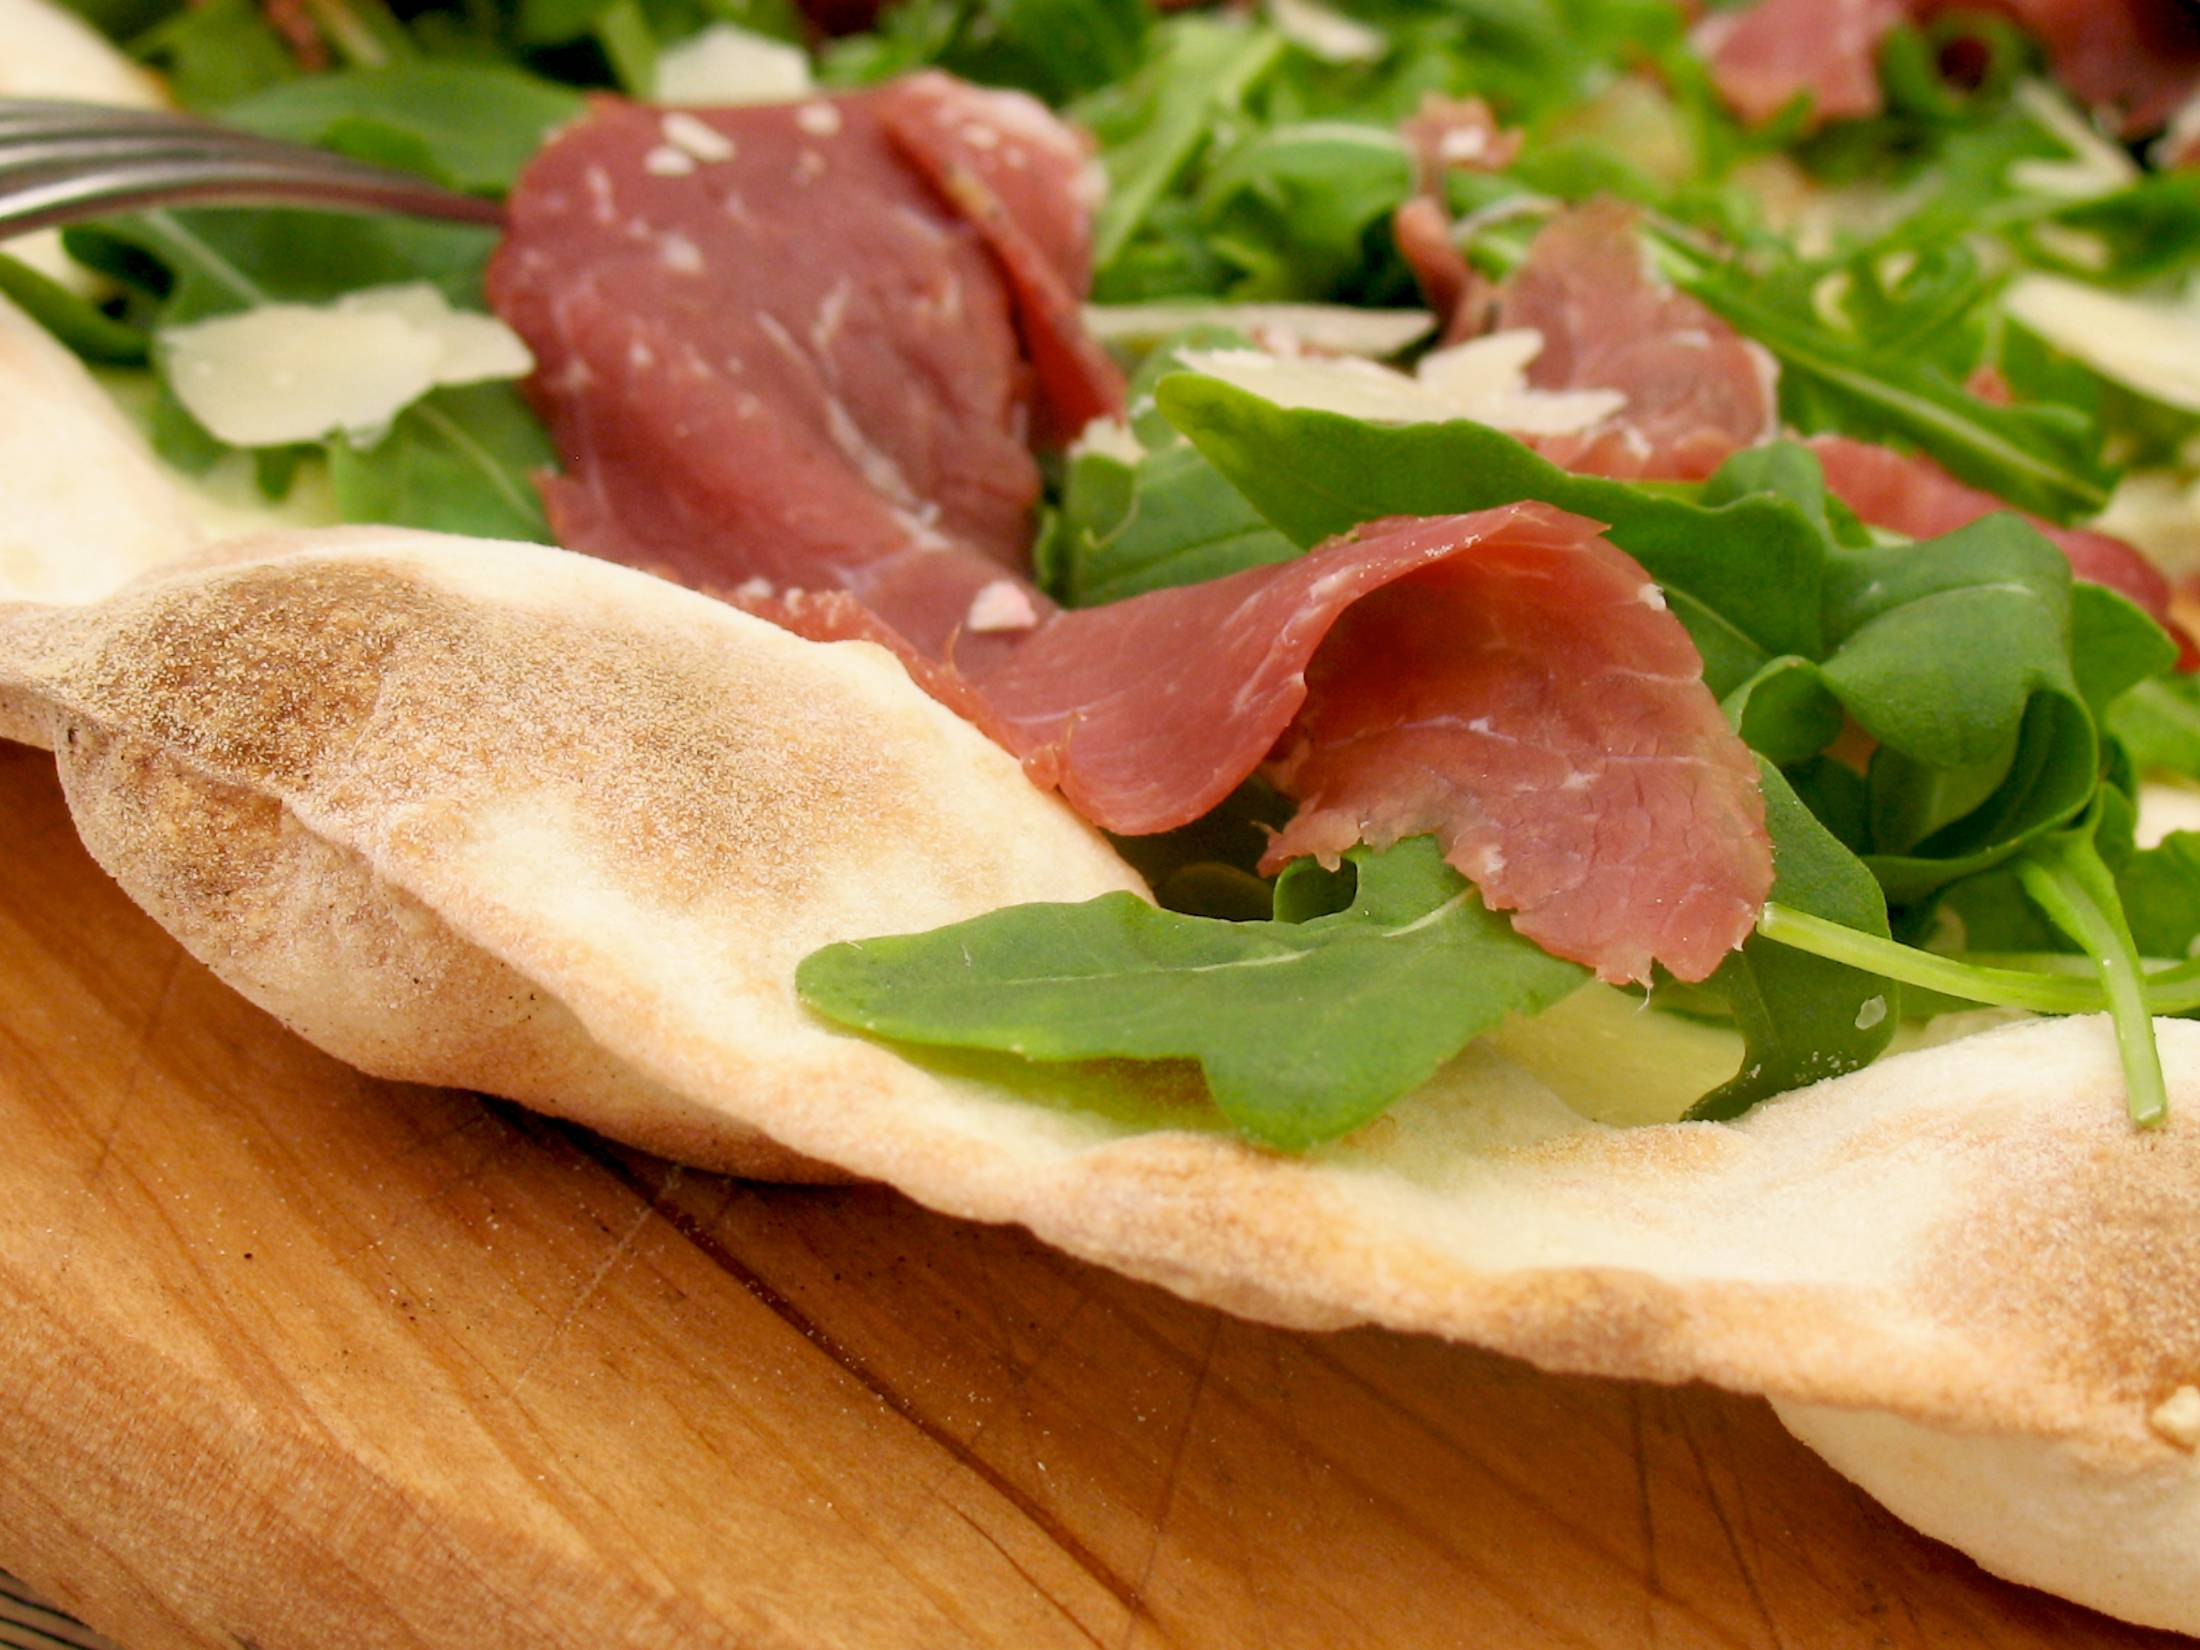 Pizza rucola, bresaola and parmiggiano